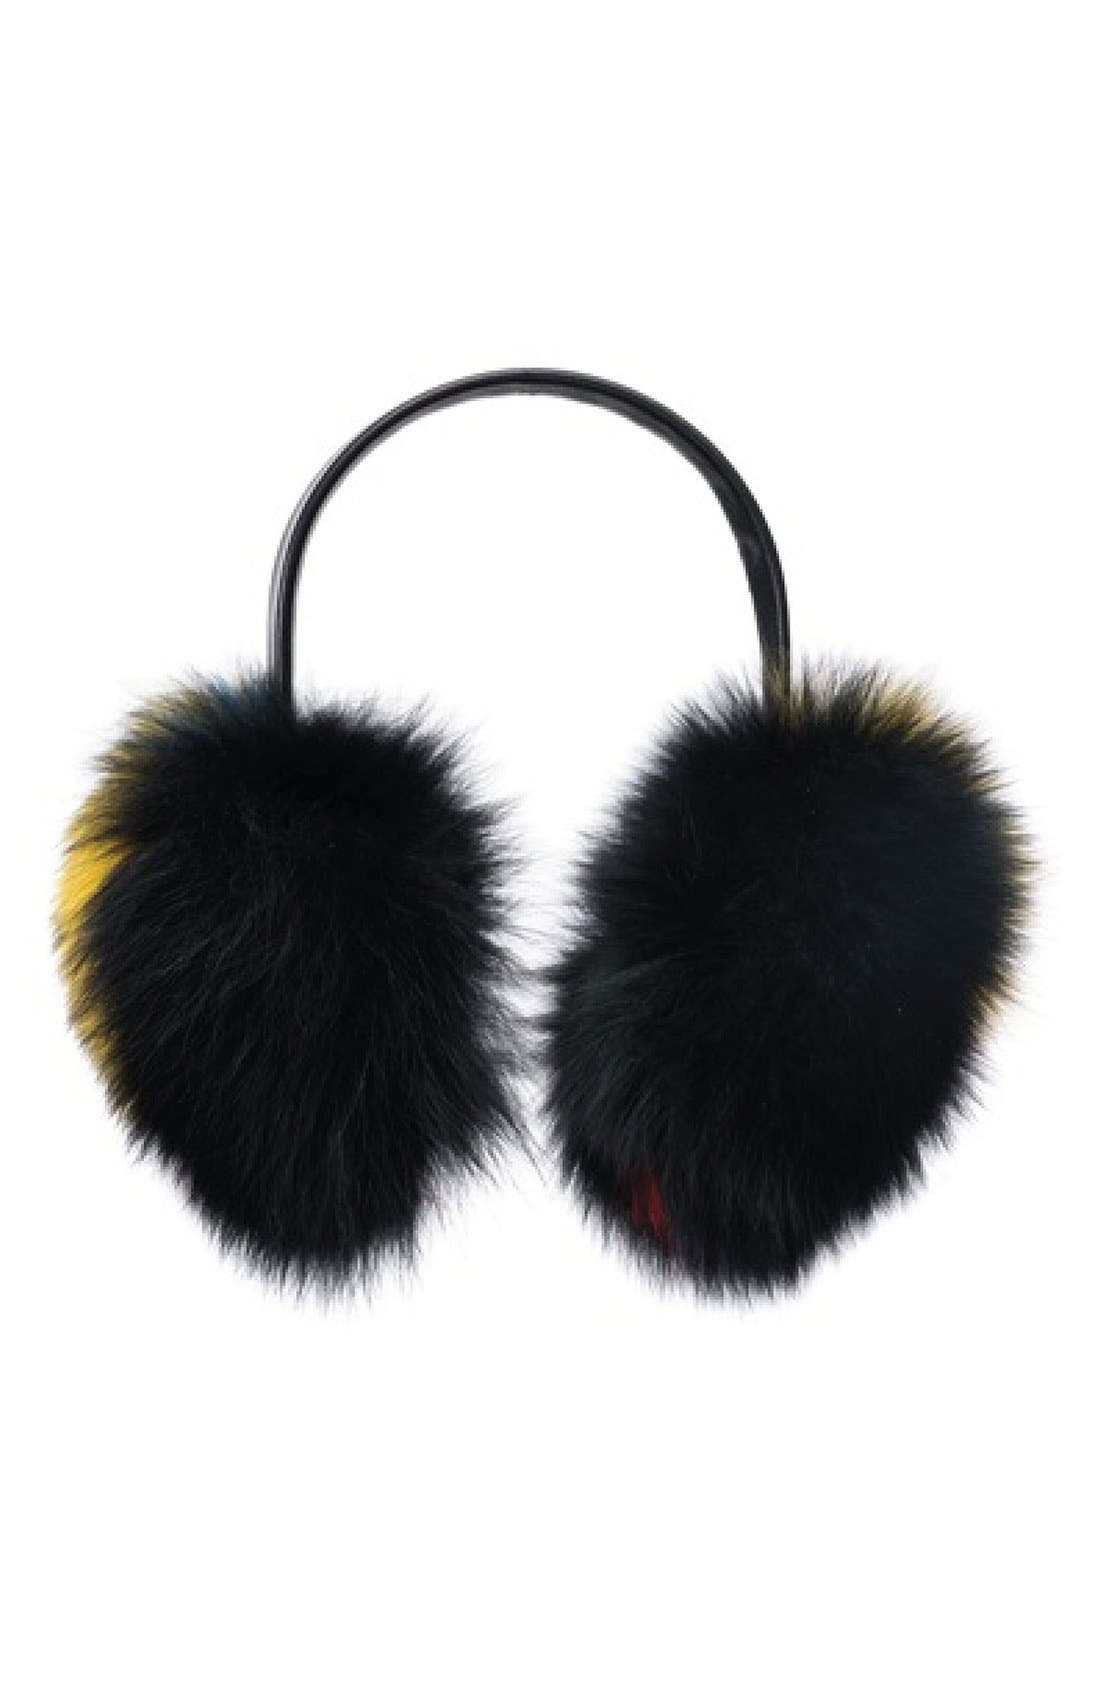 Alternate Image 1 Selected - Eugenia Kim 'Janine' Genuine Fox Fur Earmuffs